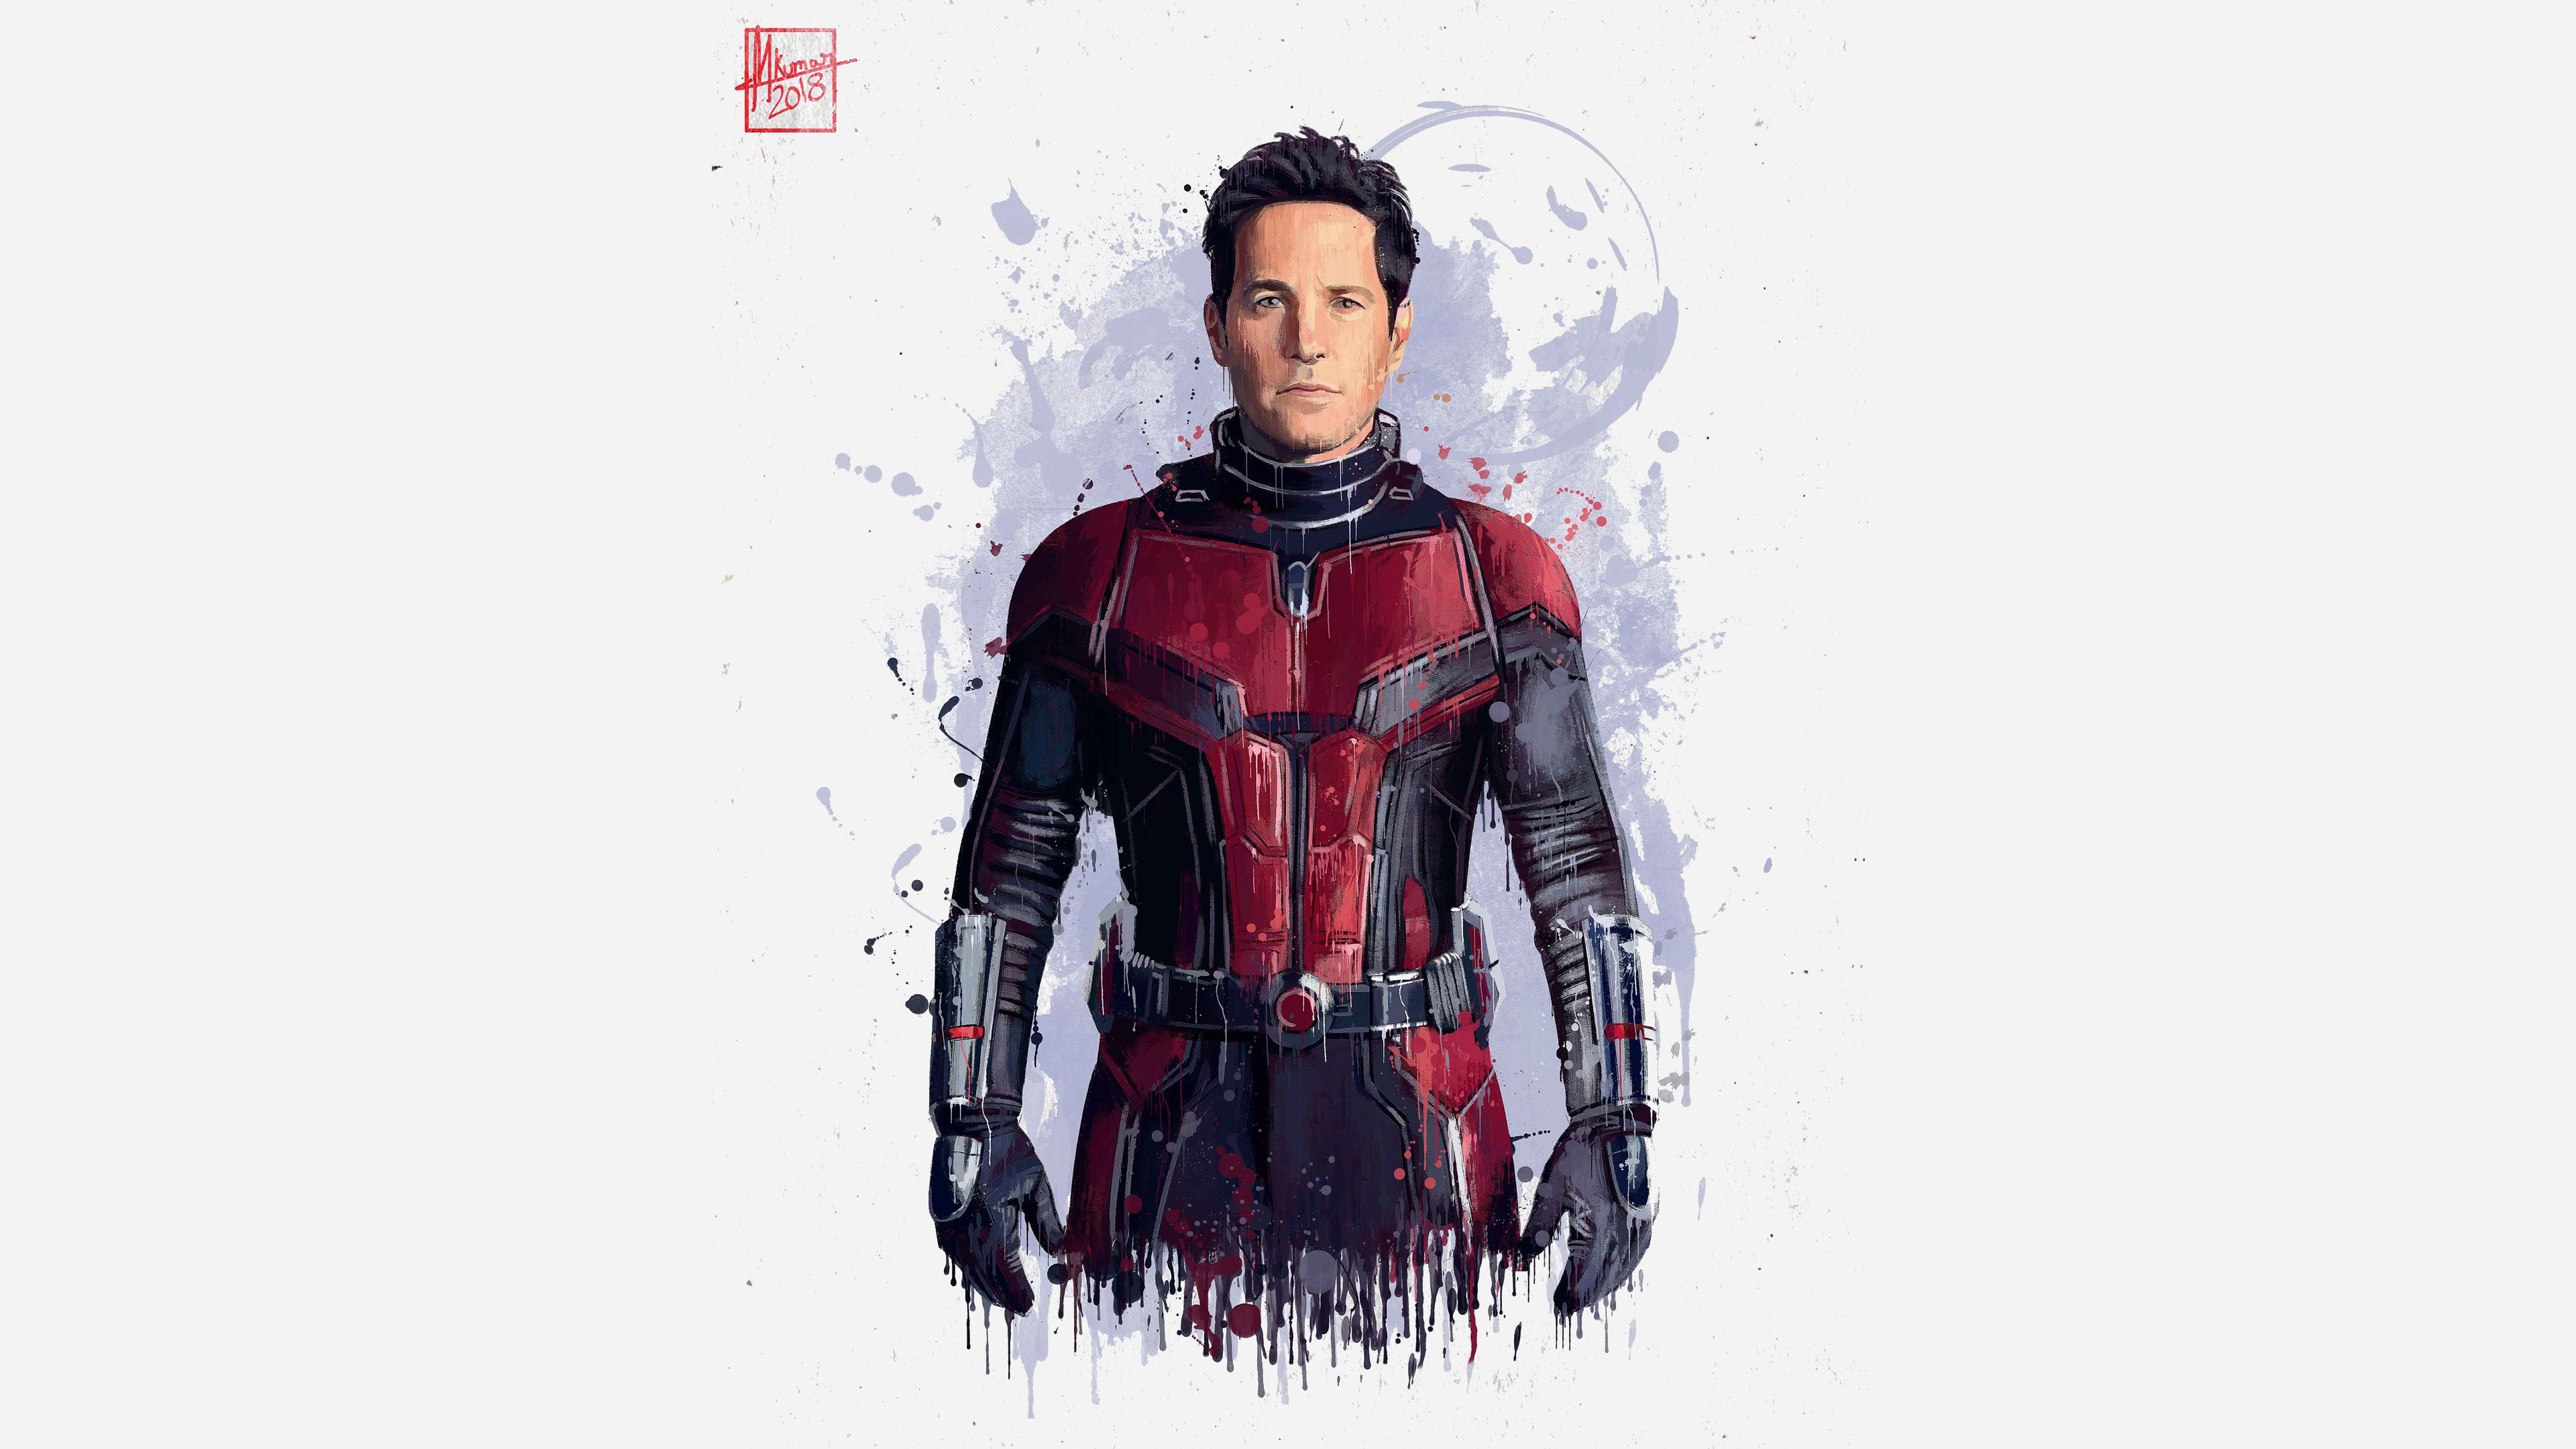 Holiday Movie Hd Wallpaper Download 3840x2400 Wallpaper Ant Man Avengers Infinity